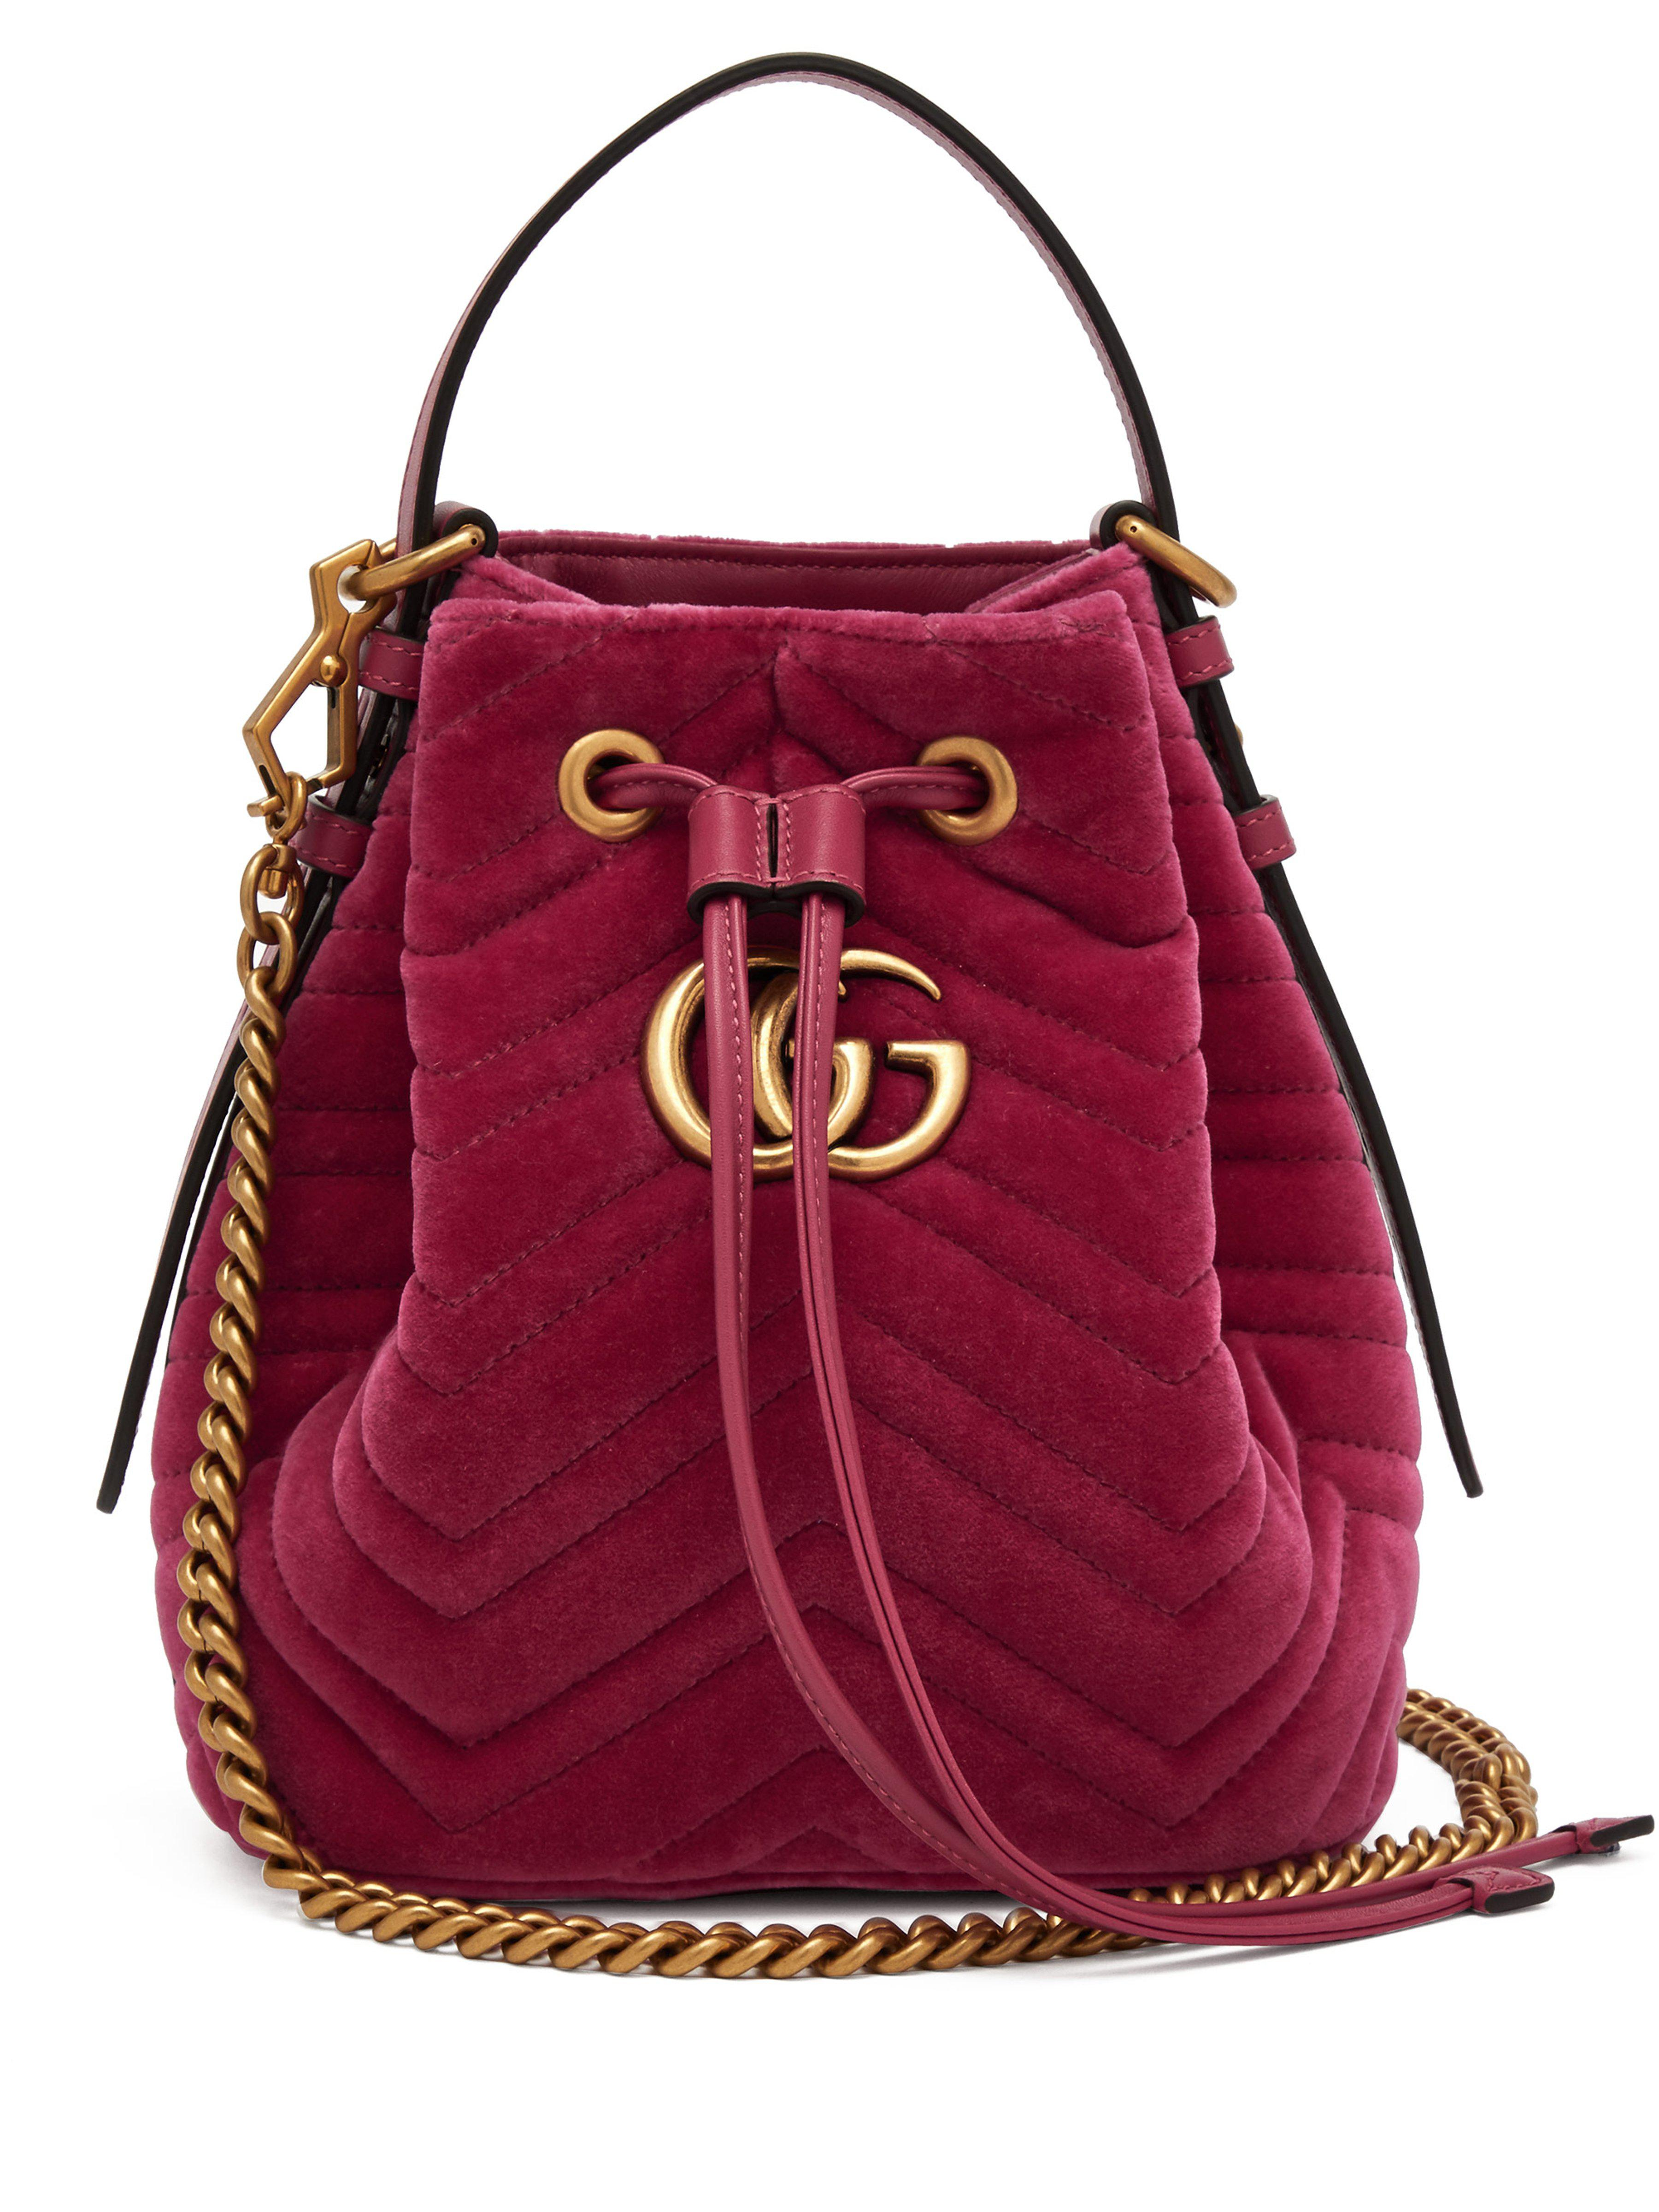 fccfe716793 Gucci Gg Marmont Quilted Velvet Drawstring Bucket Bag in Pink - Lyst